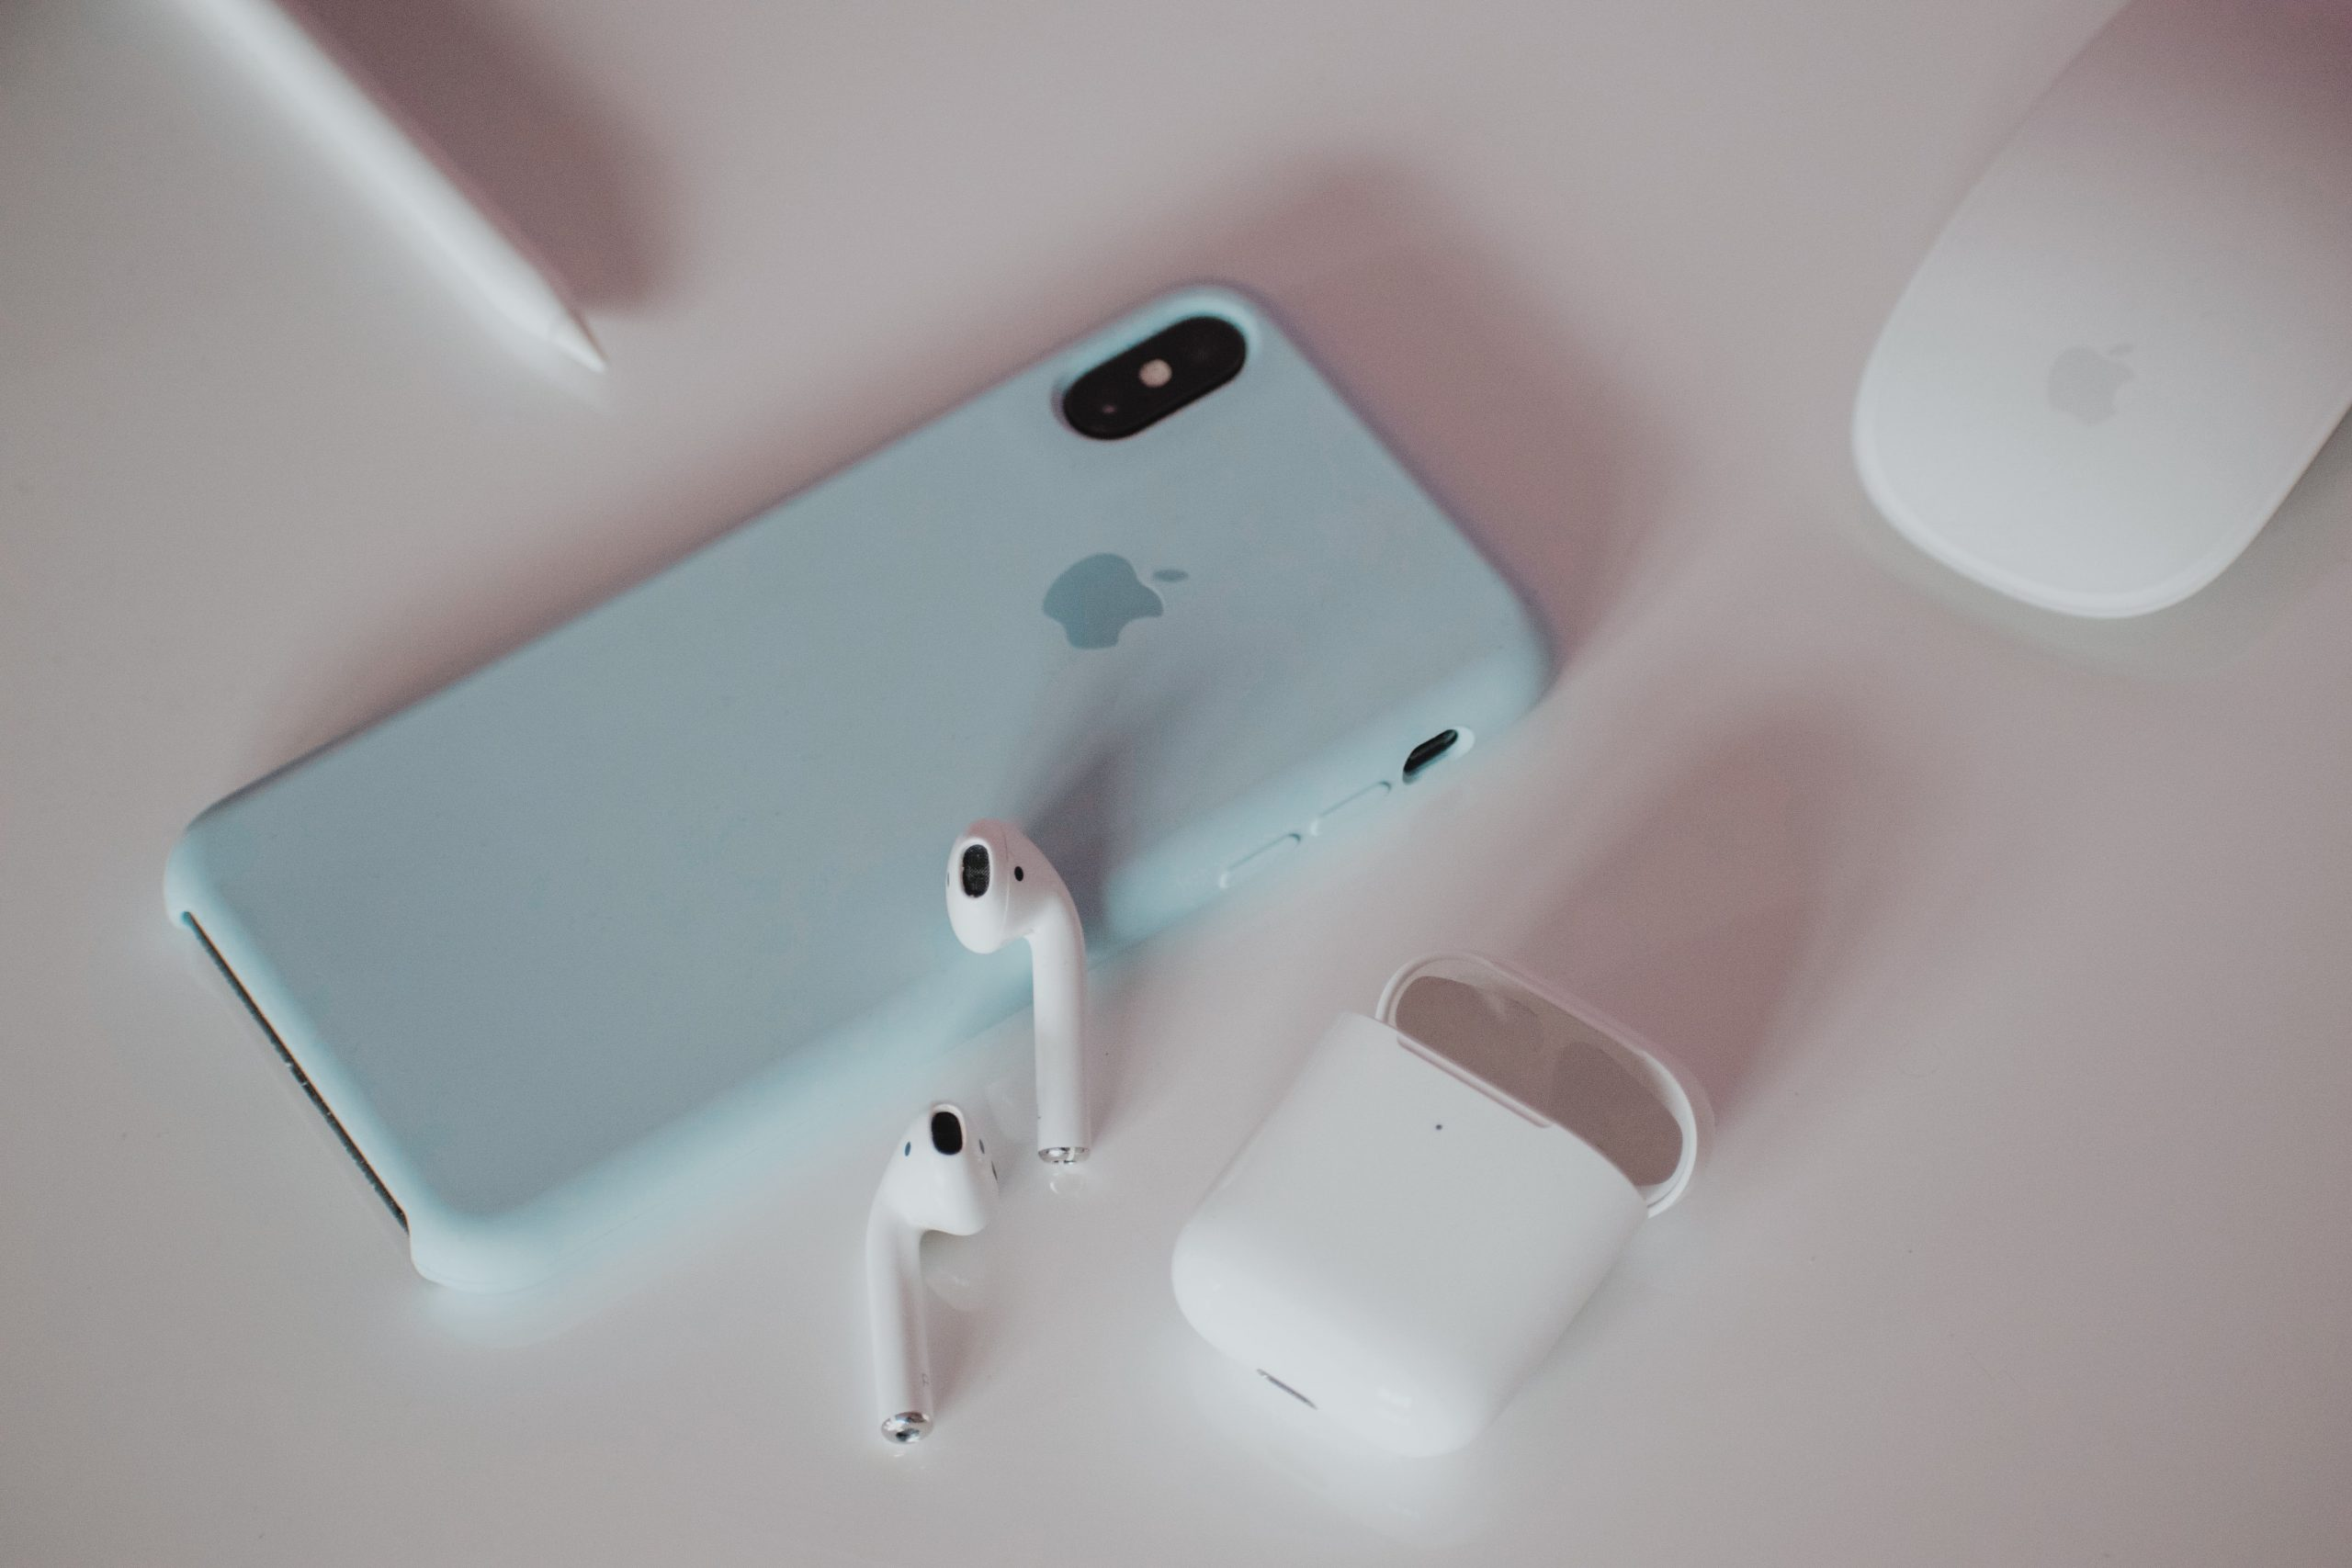 can two different airpods work together